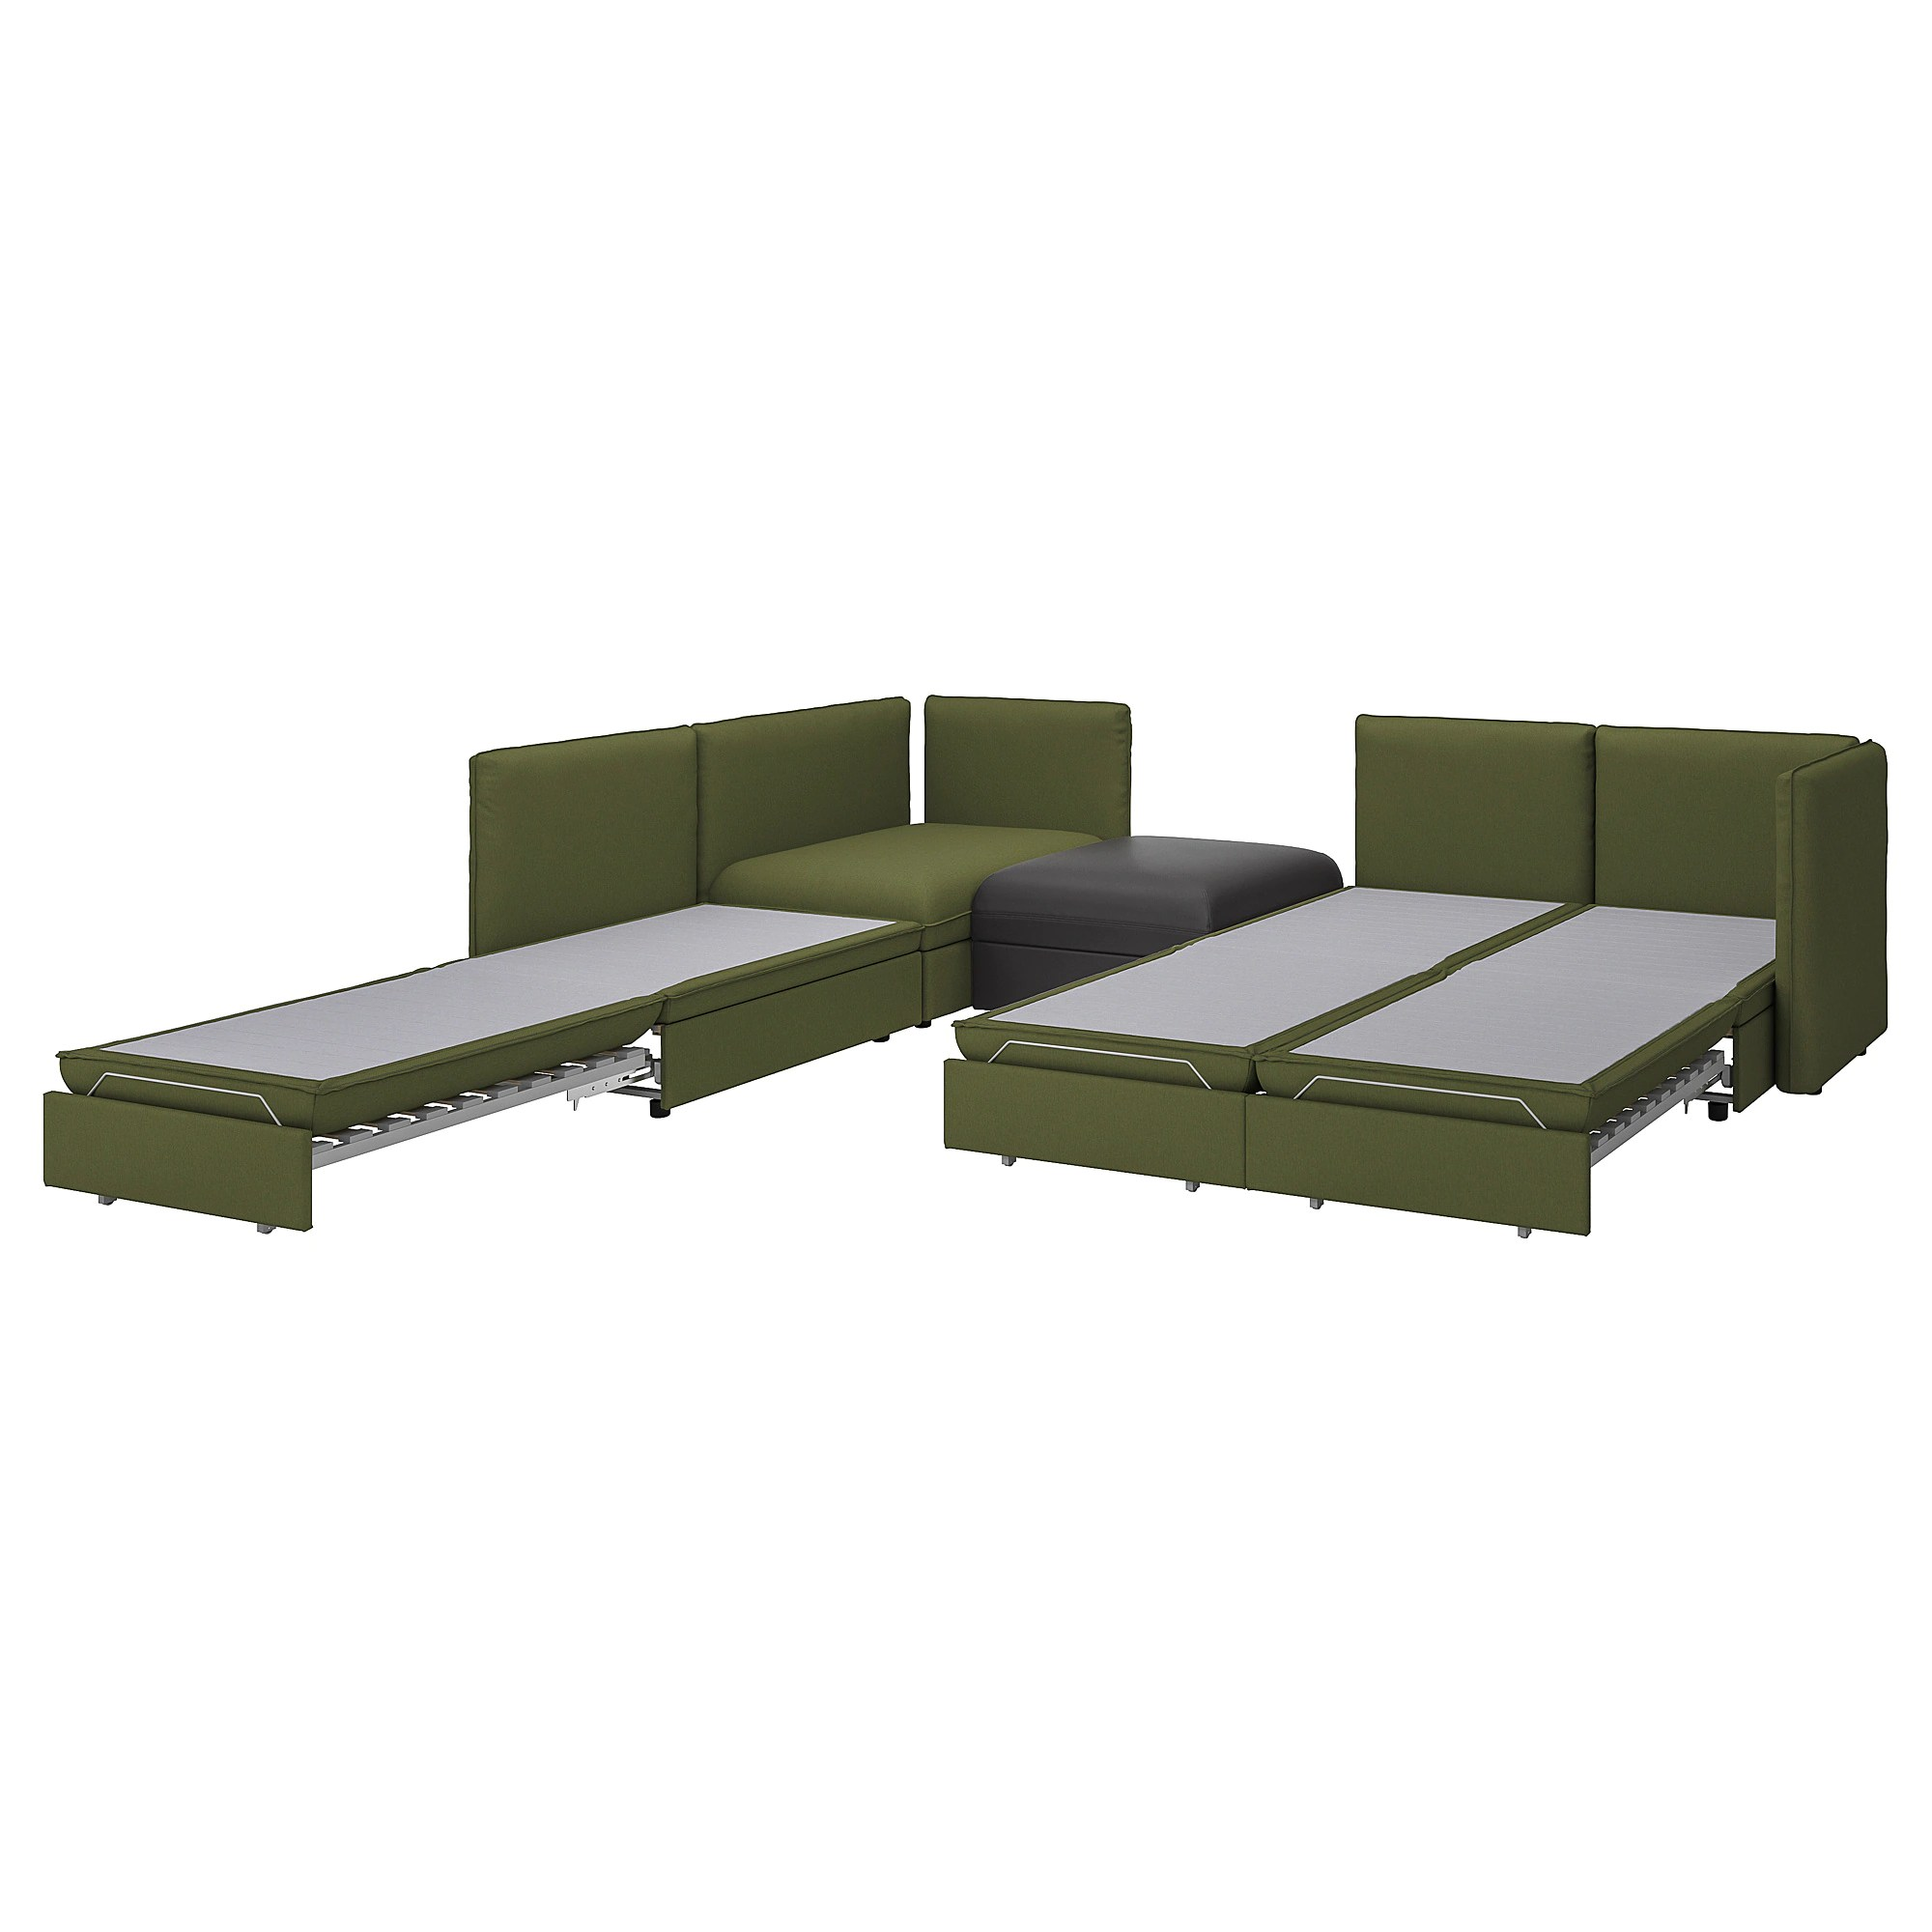 Vallentuna 4 Seat Modular Sofa With 3 Beds 4 Seat Modular Sofa W 3 Sofa Beds Vallentuna And Storage Orrsta Murum Olive Green Black